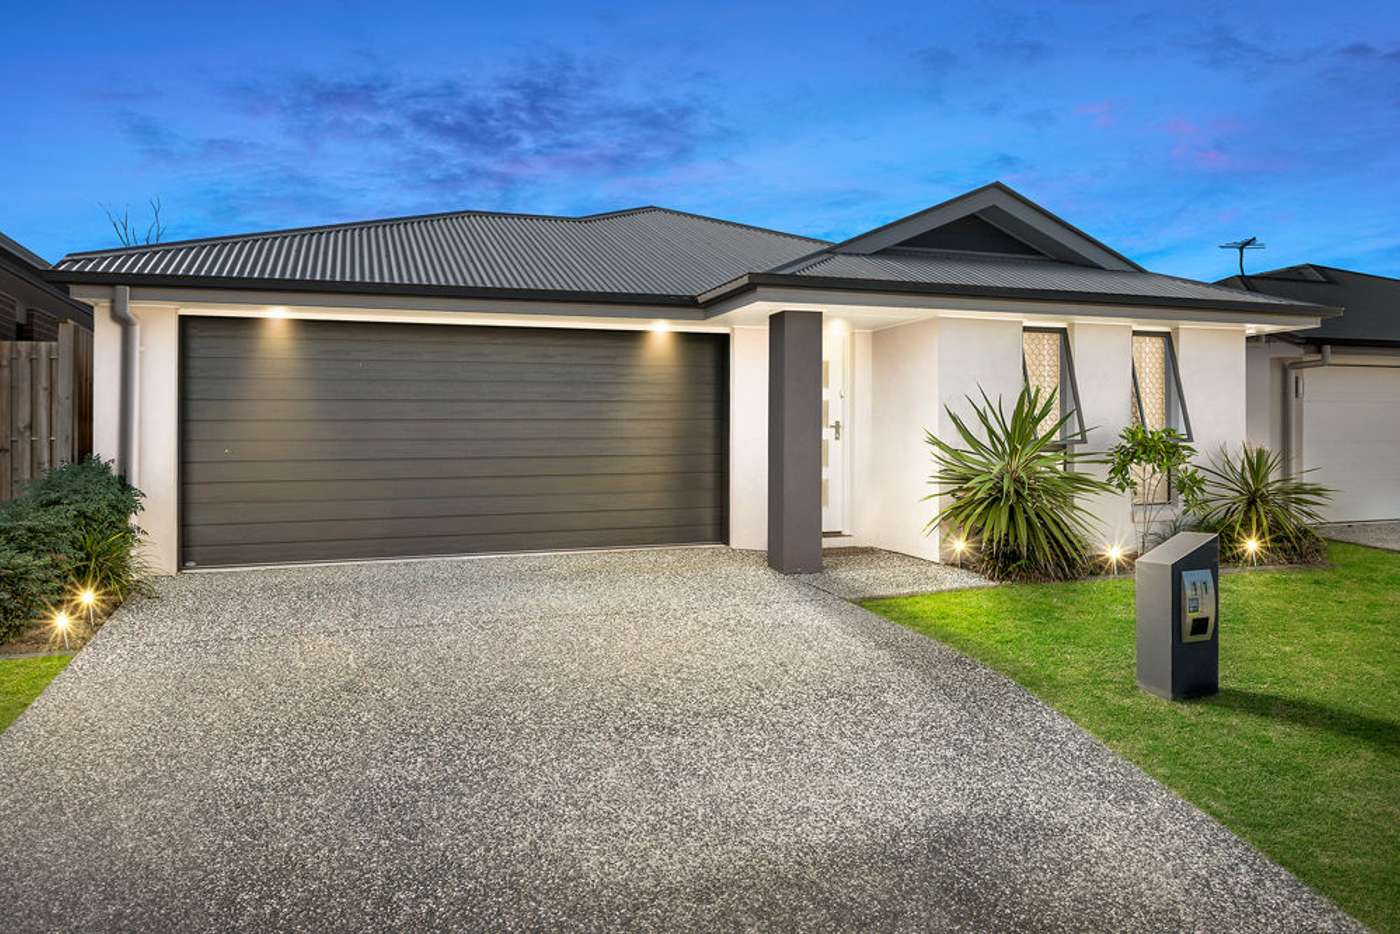 Main view of Homely house listing, 11 Dryander Street, North Lakes QLD 4509